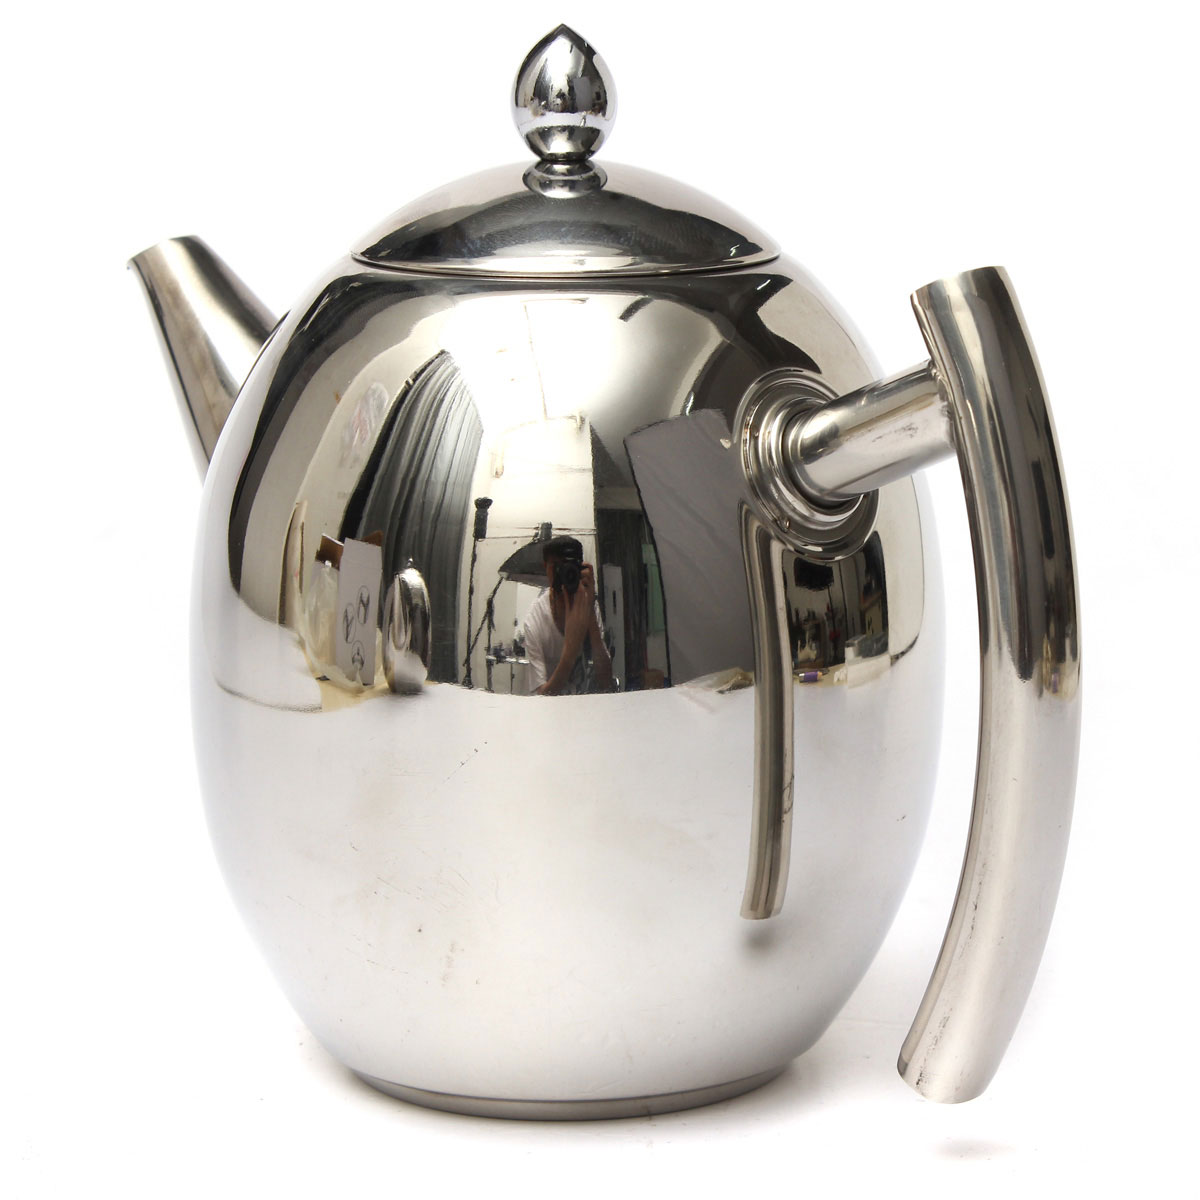 Tea Kettle With Strainer 1000ml Stainless Steel Tea Coffee Pot Kettle With Strainer